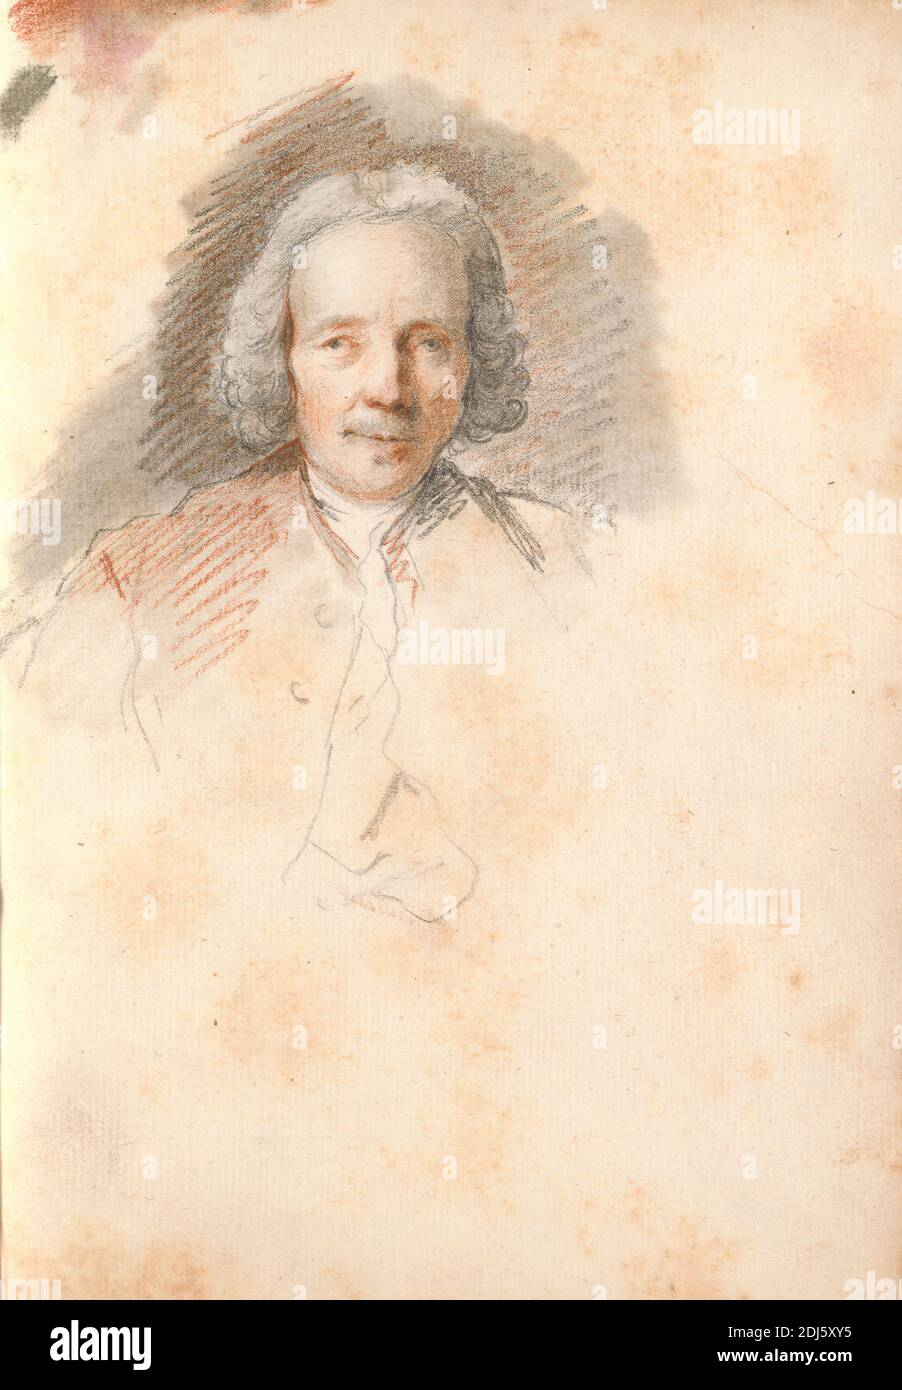 Head of an Elderly Man, Thomas Patch, 1725–1782, British, 1760s, Black chalk, red chalk and gray wash on medium, slightly textured, cream laid paper bound in carta fiorentina, Sheet: 8 3/4 x 6 1/2 inches (22.2 x 16.5 cm) and Spine: 8 7/8 inches (22.5 cm), Grand Tour, portrait Stock Photo